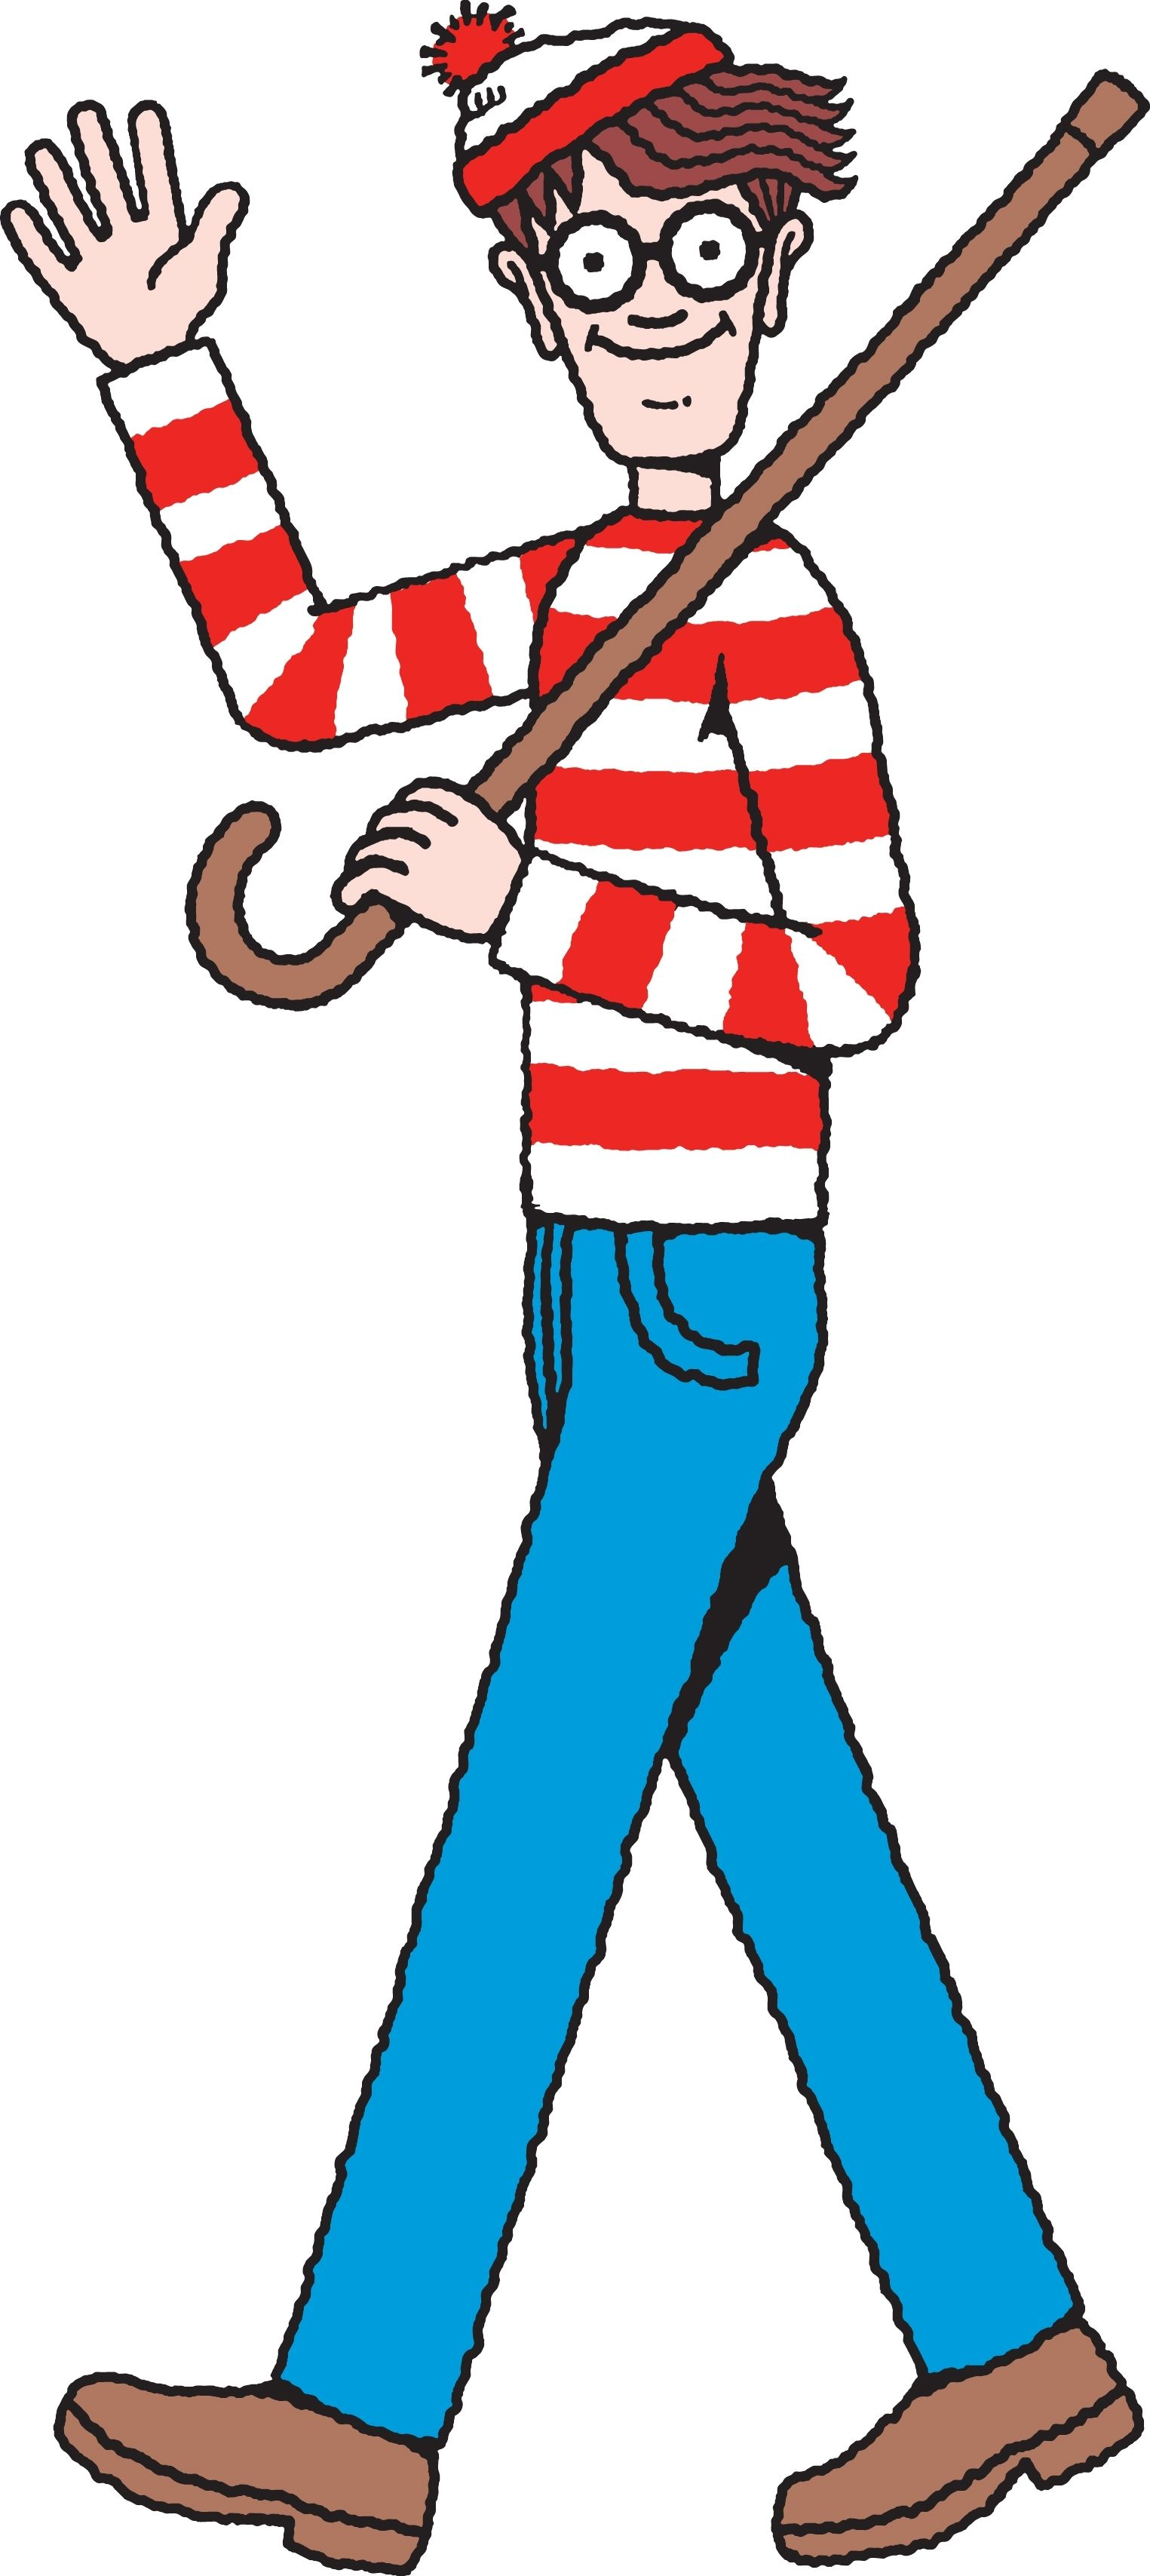 Make little wheres waldo stickers and stick them in random public places